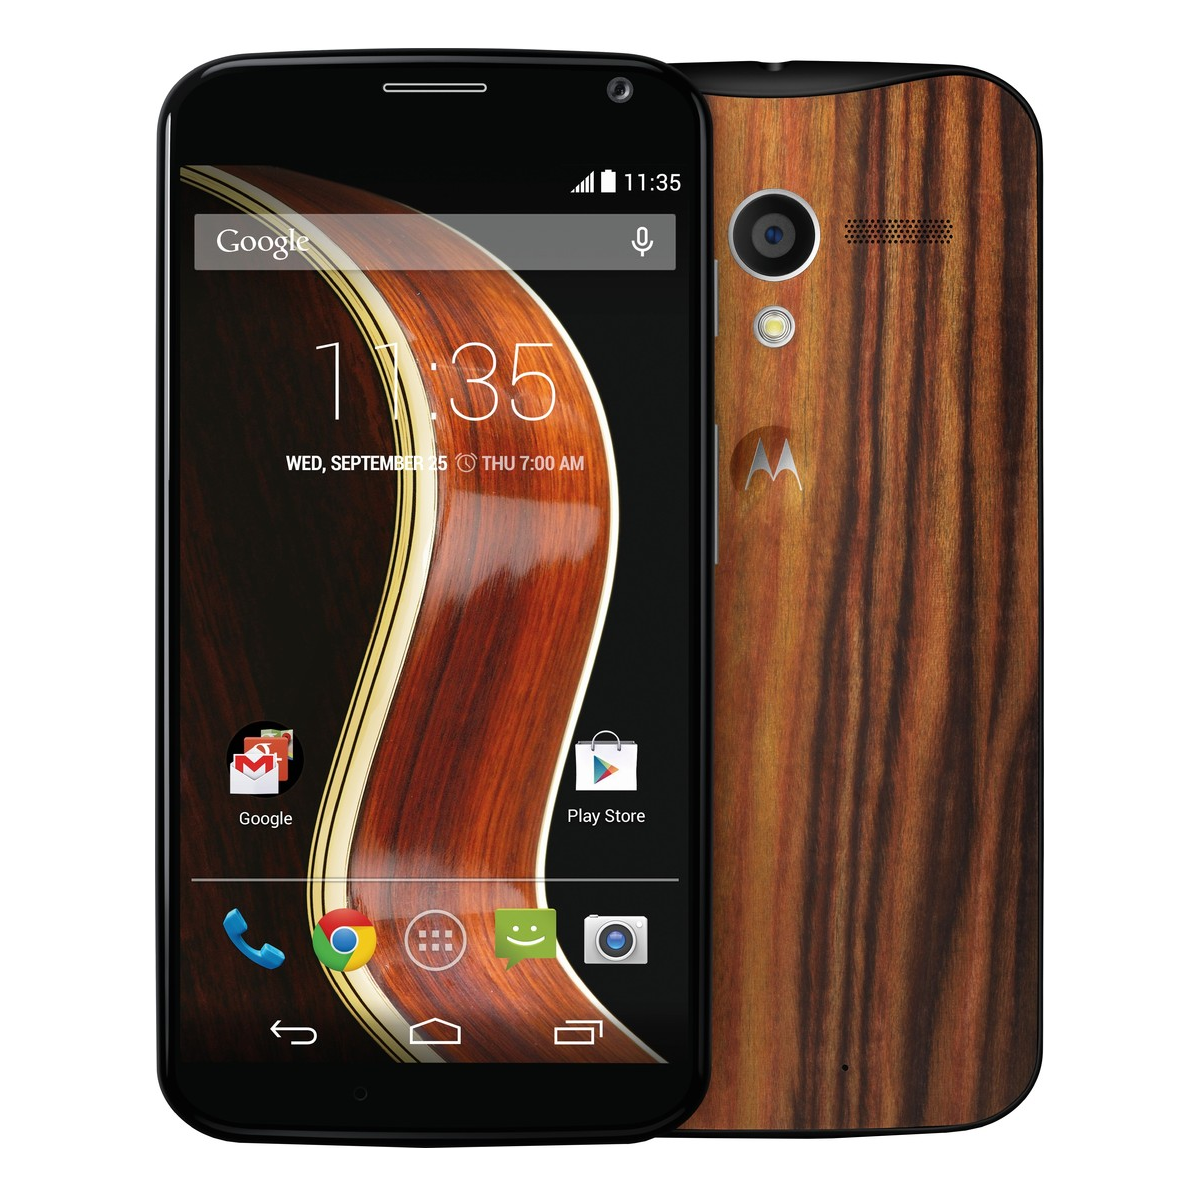 Motorola Moto X 16GB XT1056 Android Smartphone - Sprint - Black with Wood Back Panel